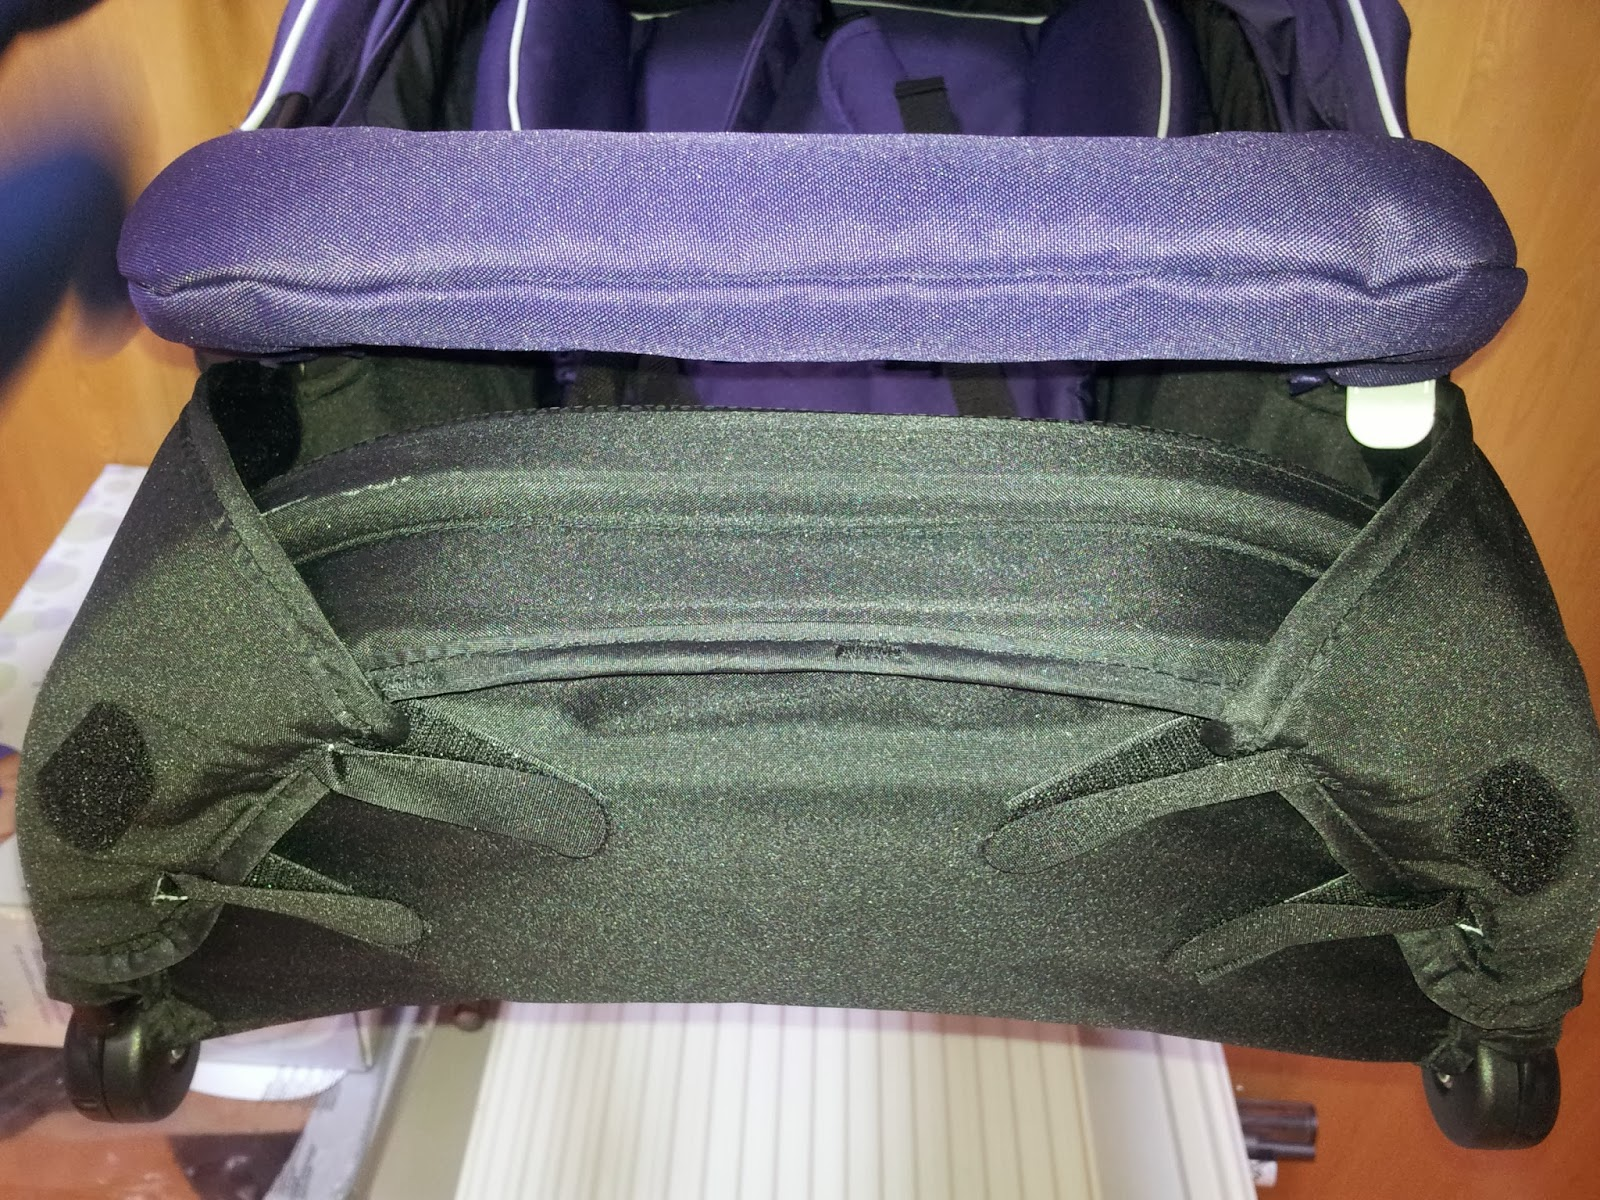 Two Kids And Three Angels 2013 Cussons Baby Purple Bag Complete Care Set Nest Mode Foot Rest Converted